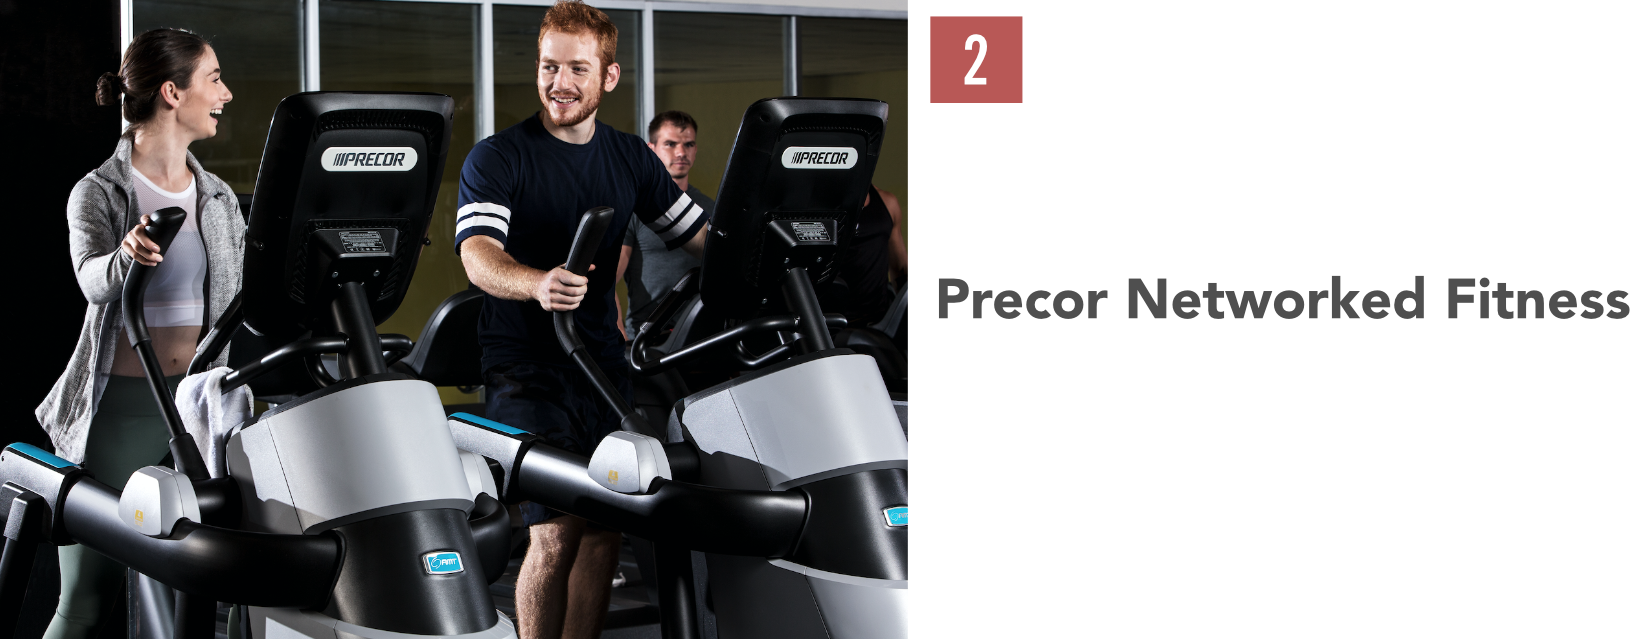 2 Precor Networked Fitness.png